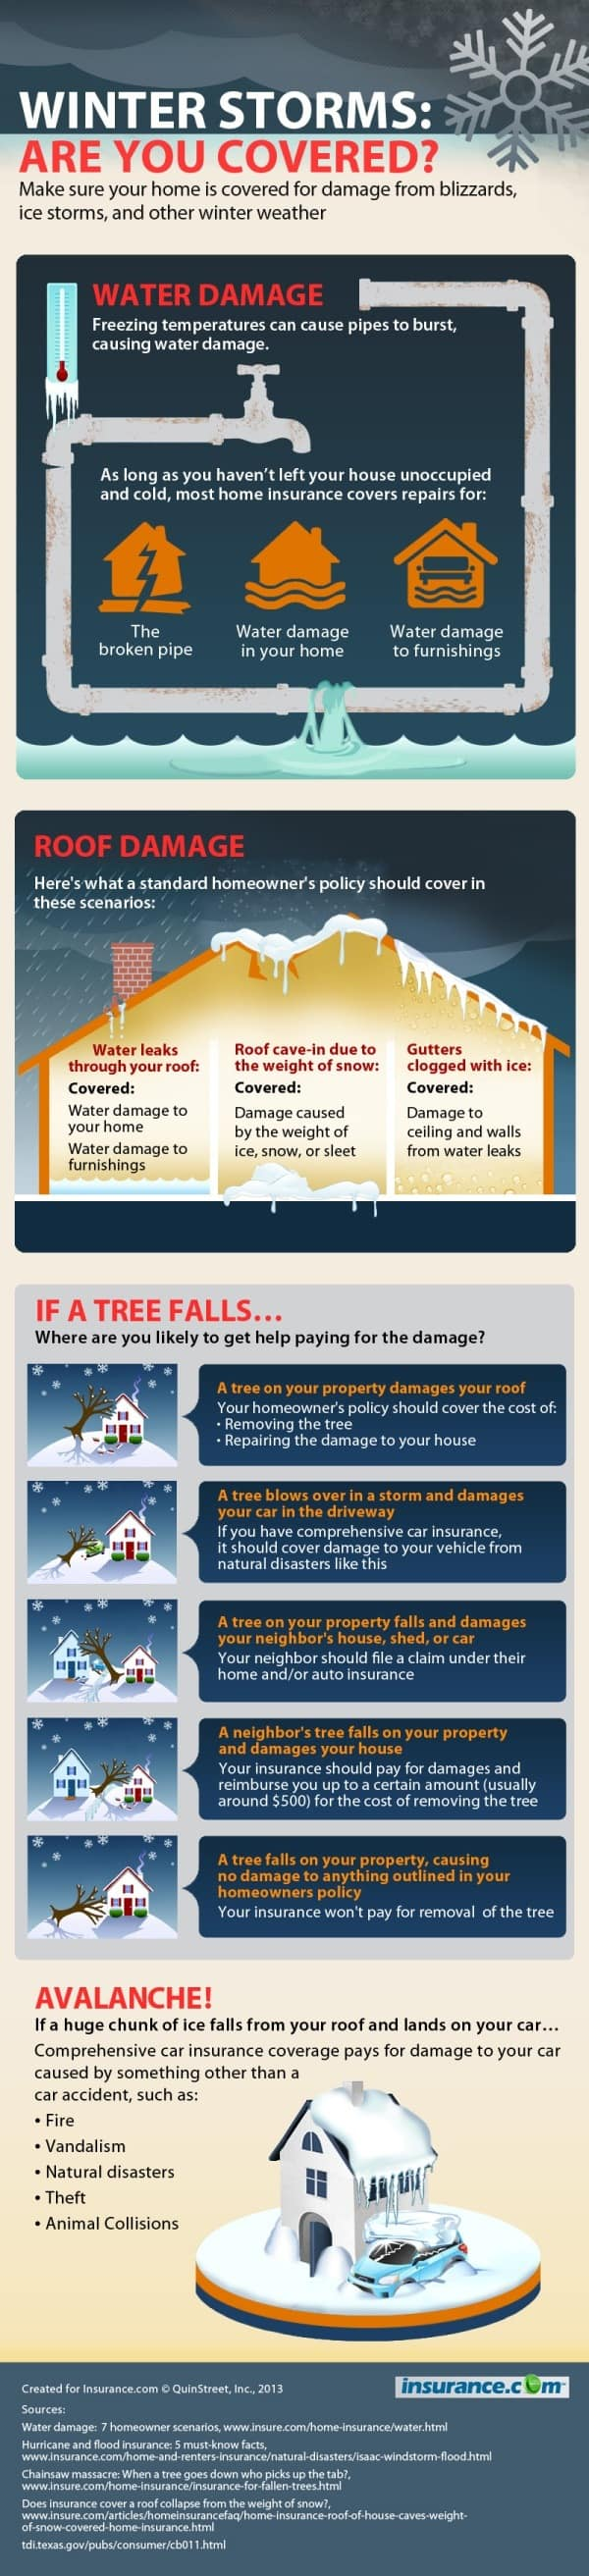 Winter storm and blizzard infographic on homeowners insurance coverage